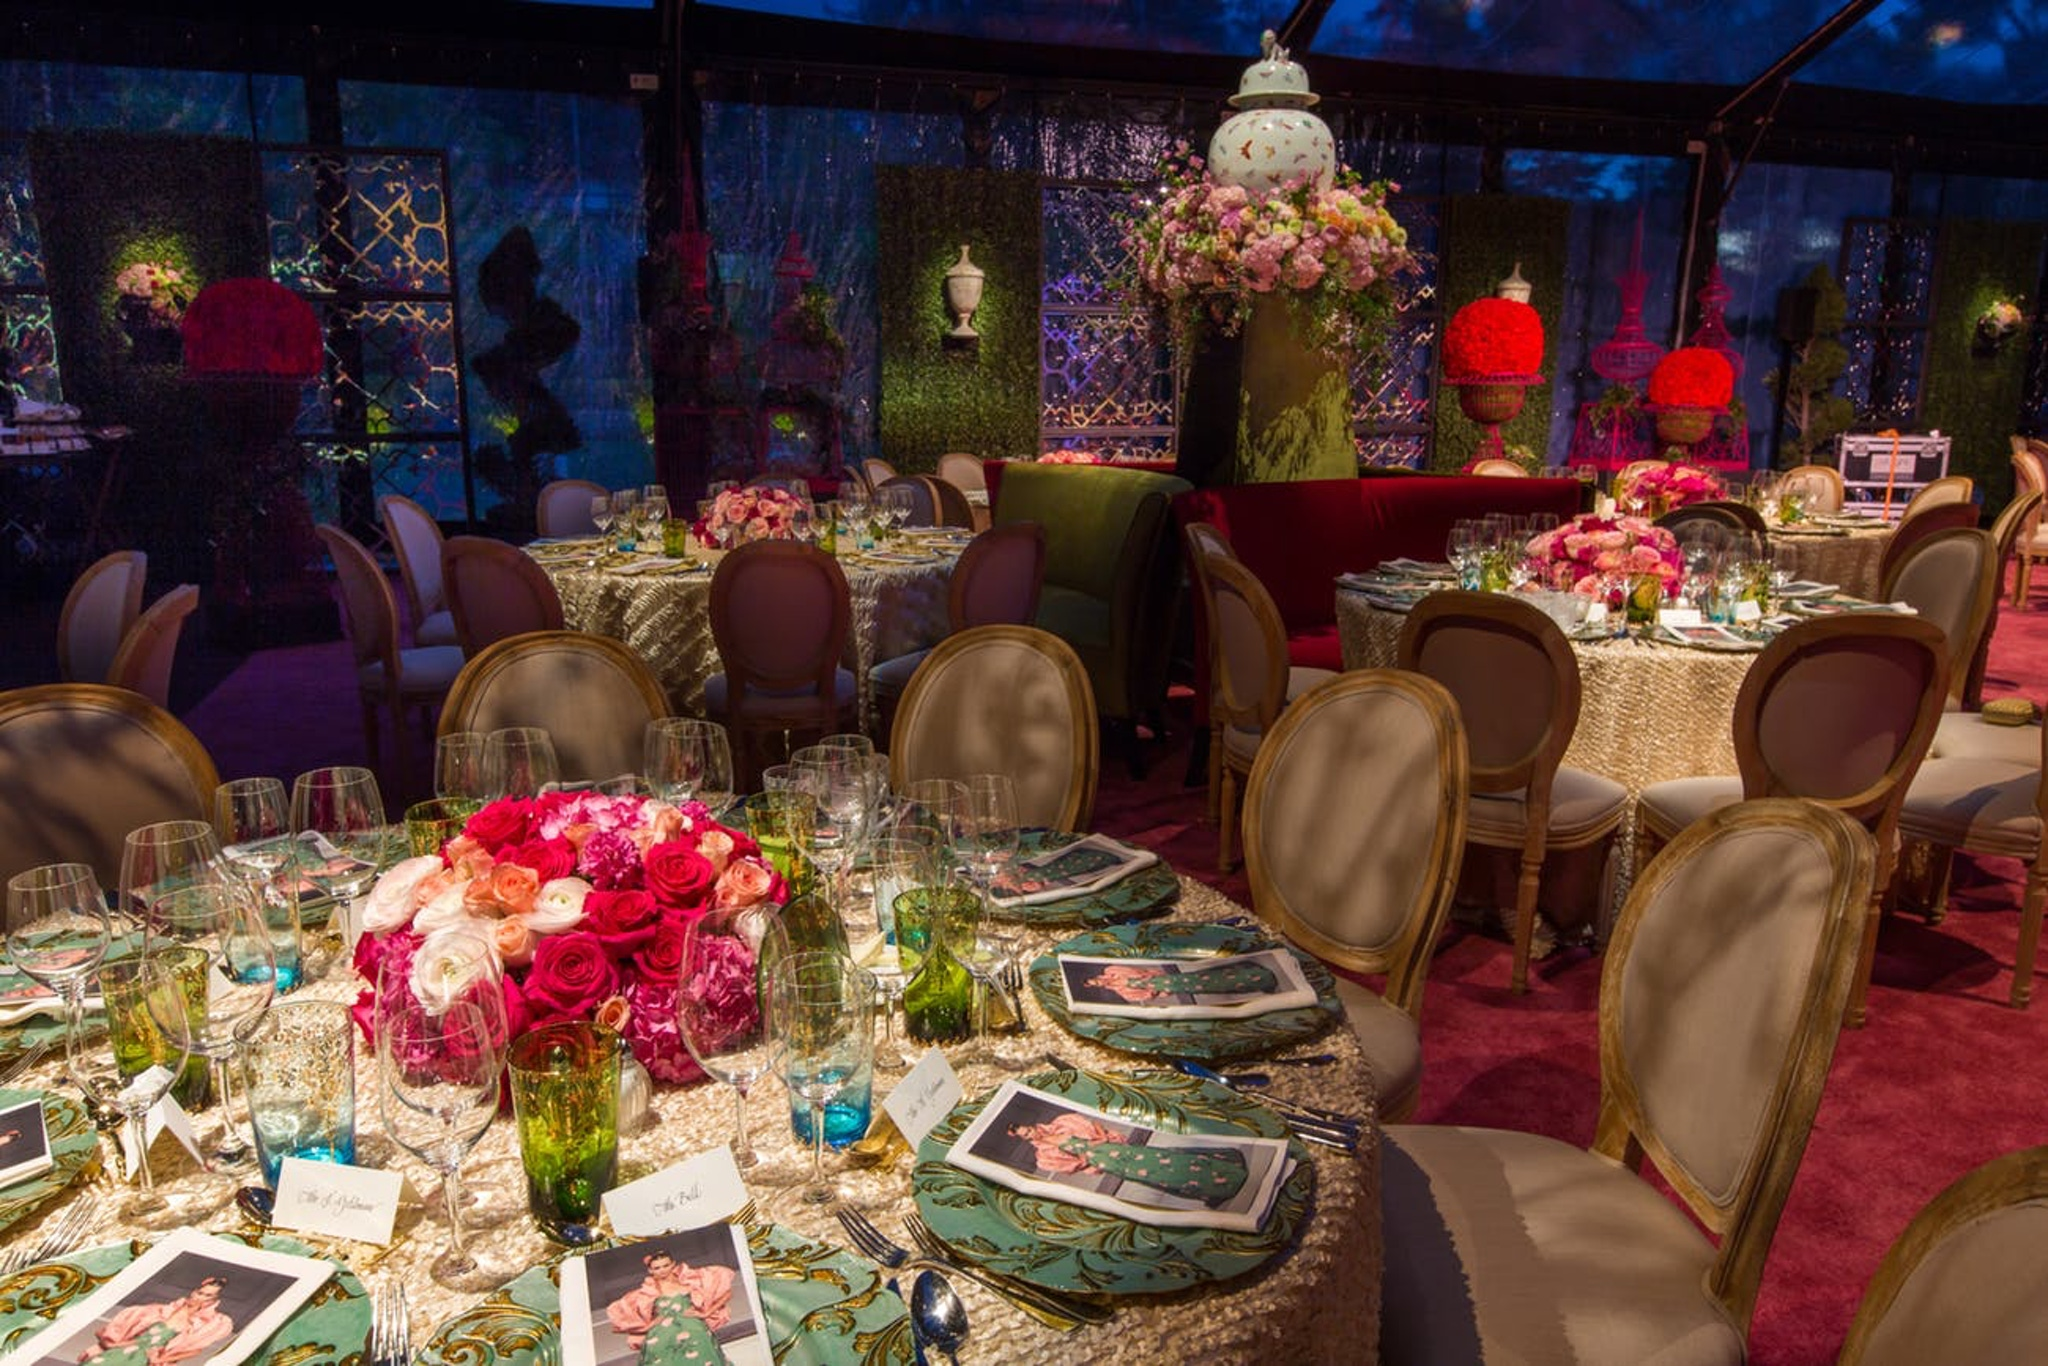 Oscar de la Renta dinner party with whimsical decor and beautiful tablescapes and pink details